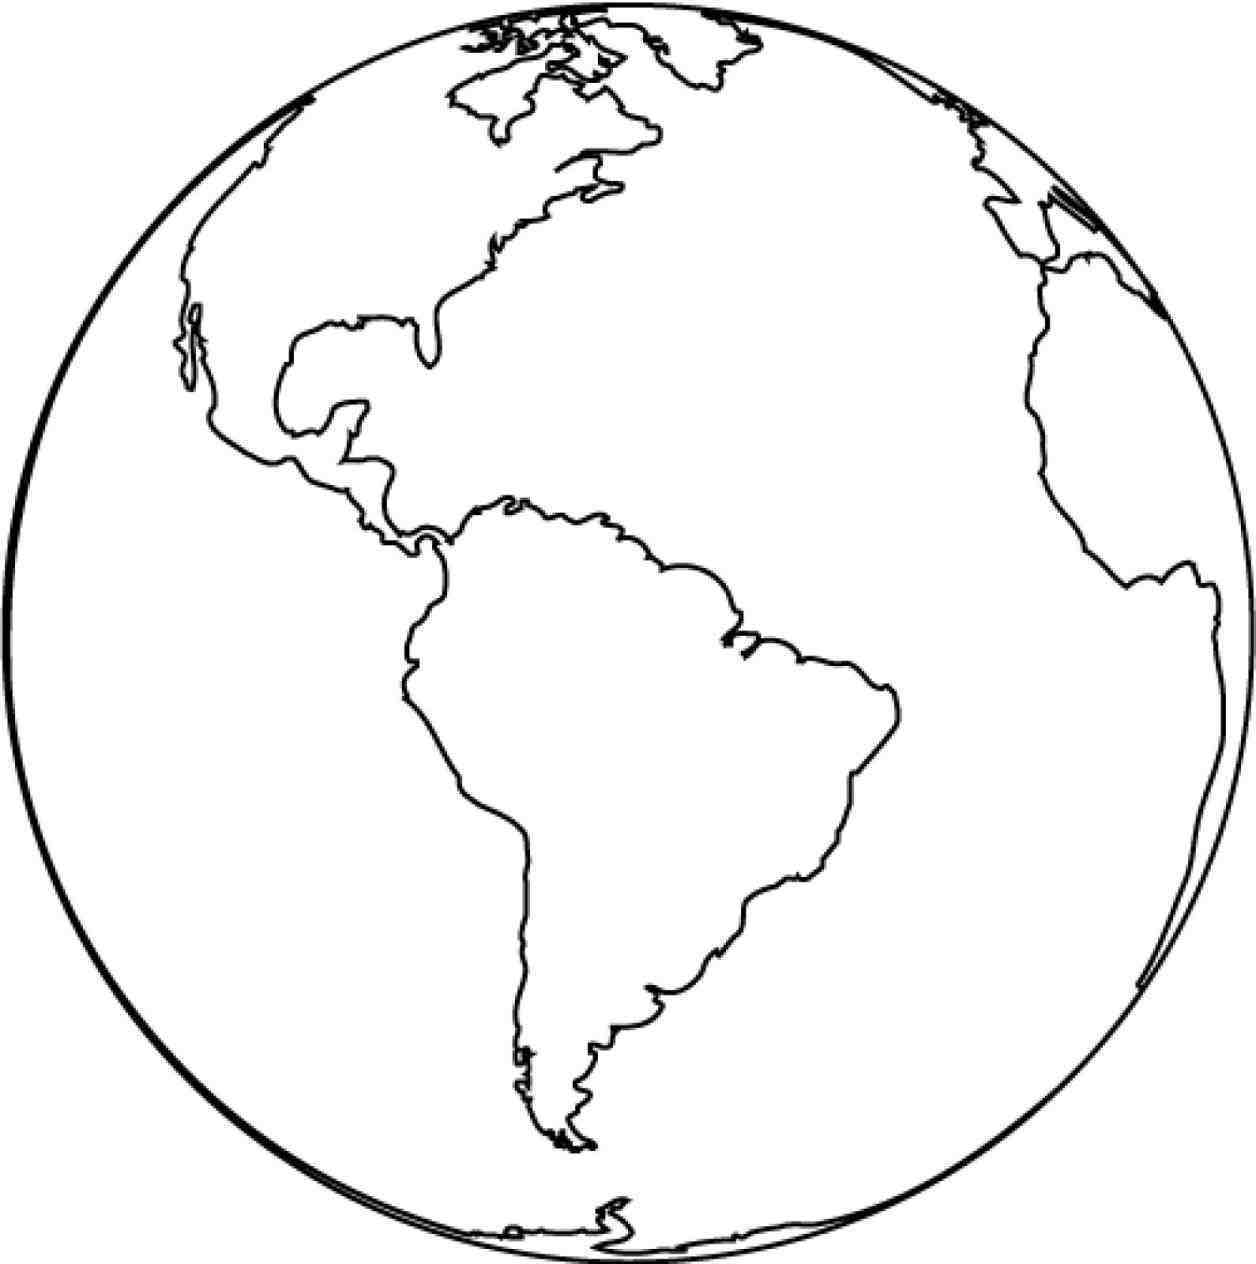 1256x1264 Free Earth Template Kids Printable Earth Coloring Pages